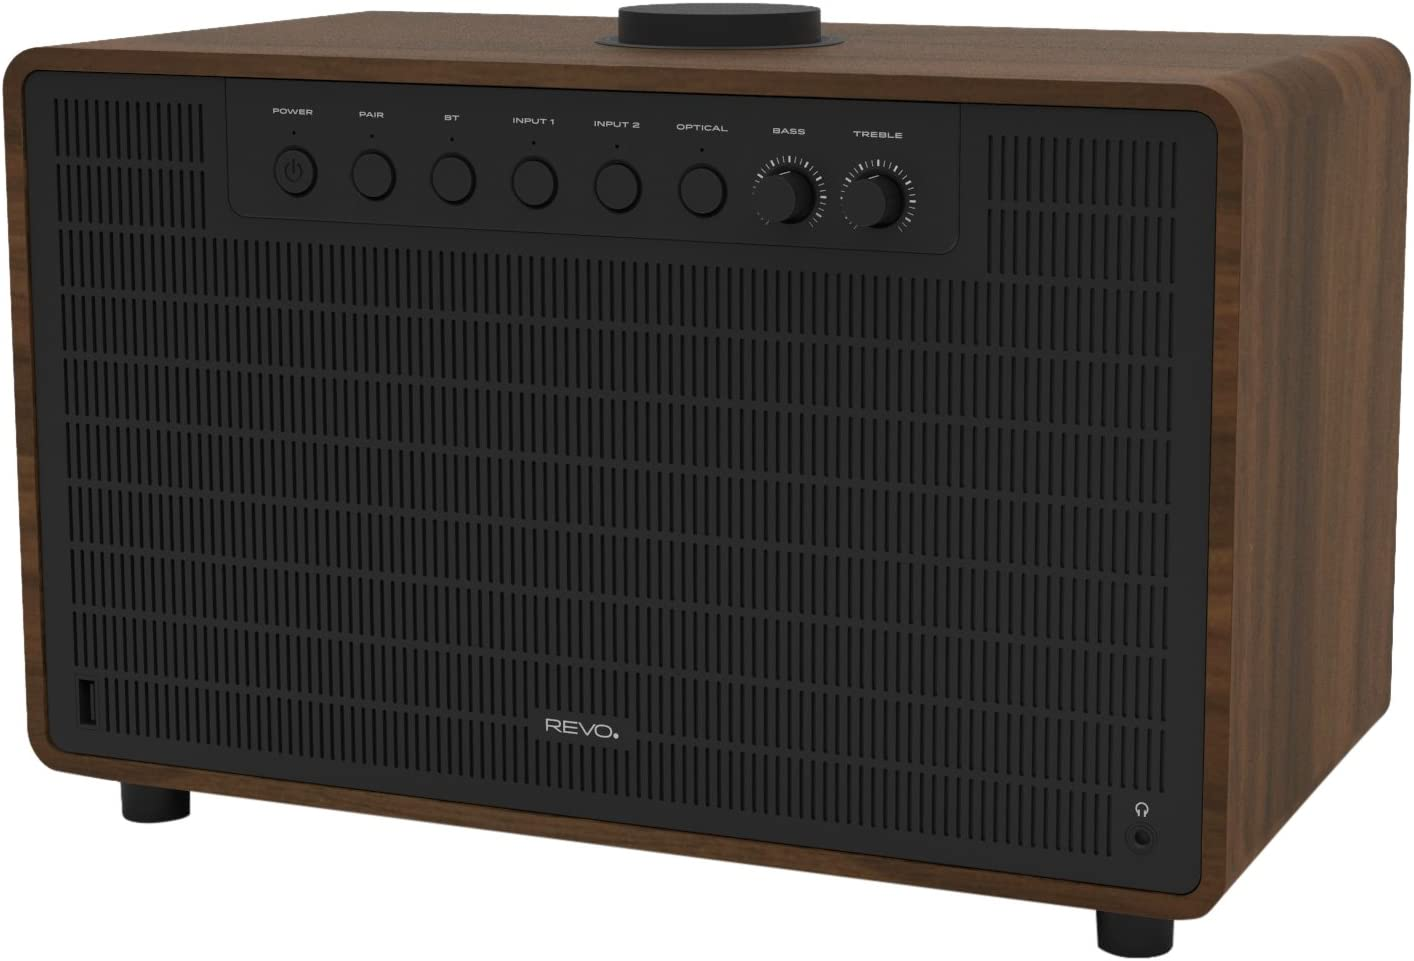 Revo 641193 Super Tone Bluetooth 4.2 Altavoz, 80 W Nogal Negro